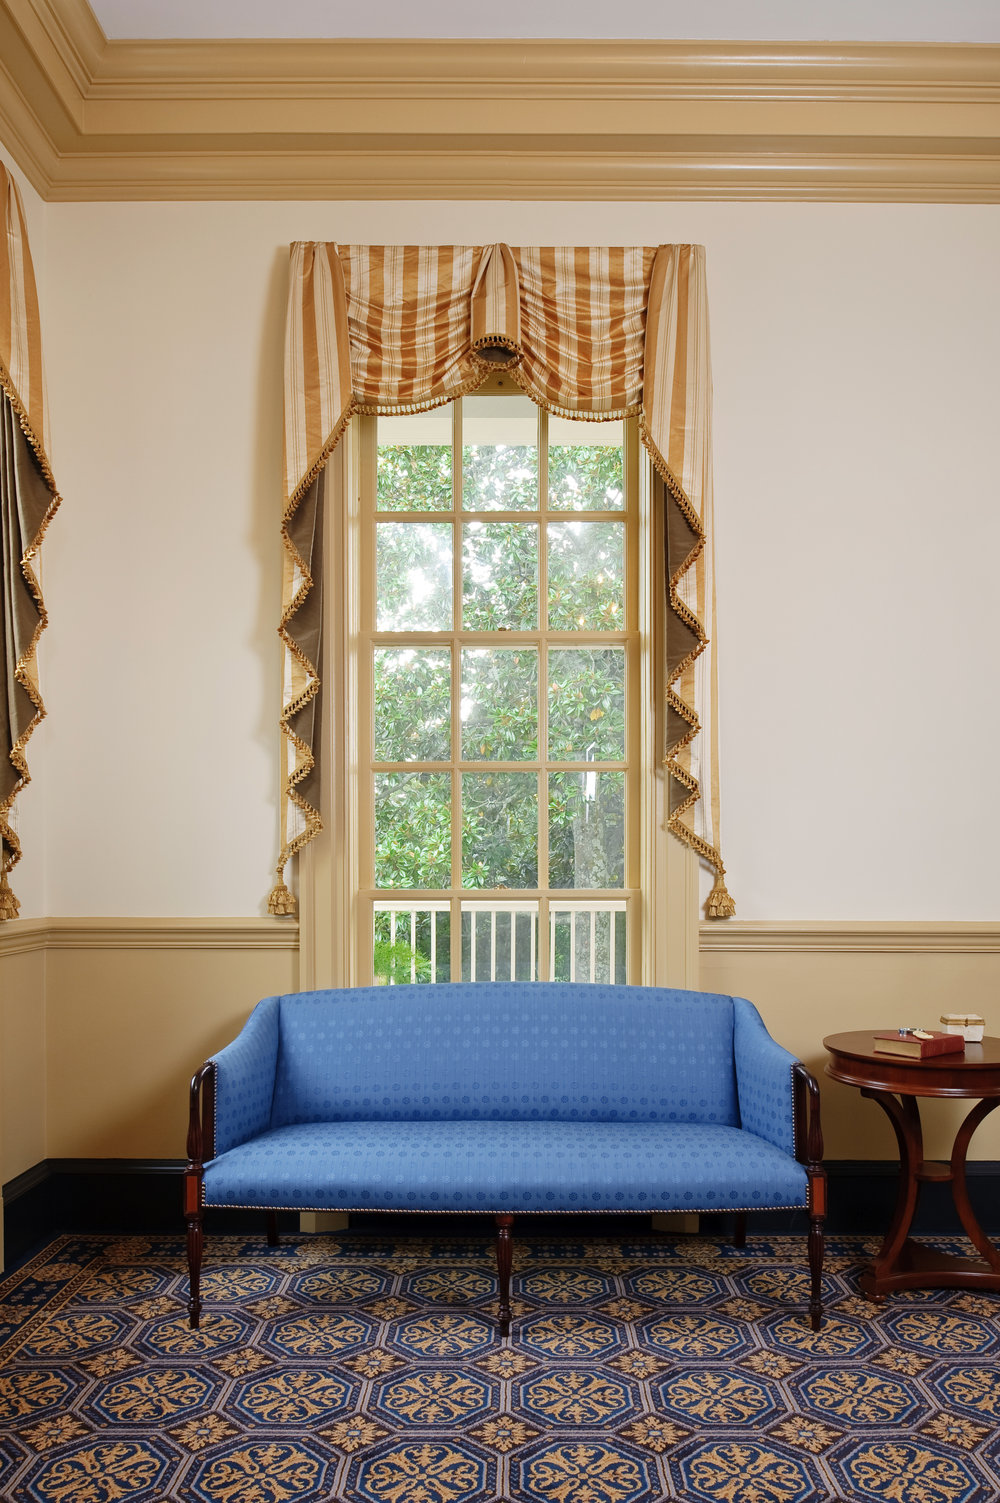 The Sheraton settee is covered in a vibrant cobalt blue, reproduction of a horsehair fabric by Brunschwig et Fils. The traditional window treatment is in a Scalamandre silk.